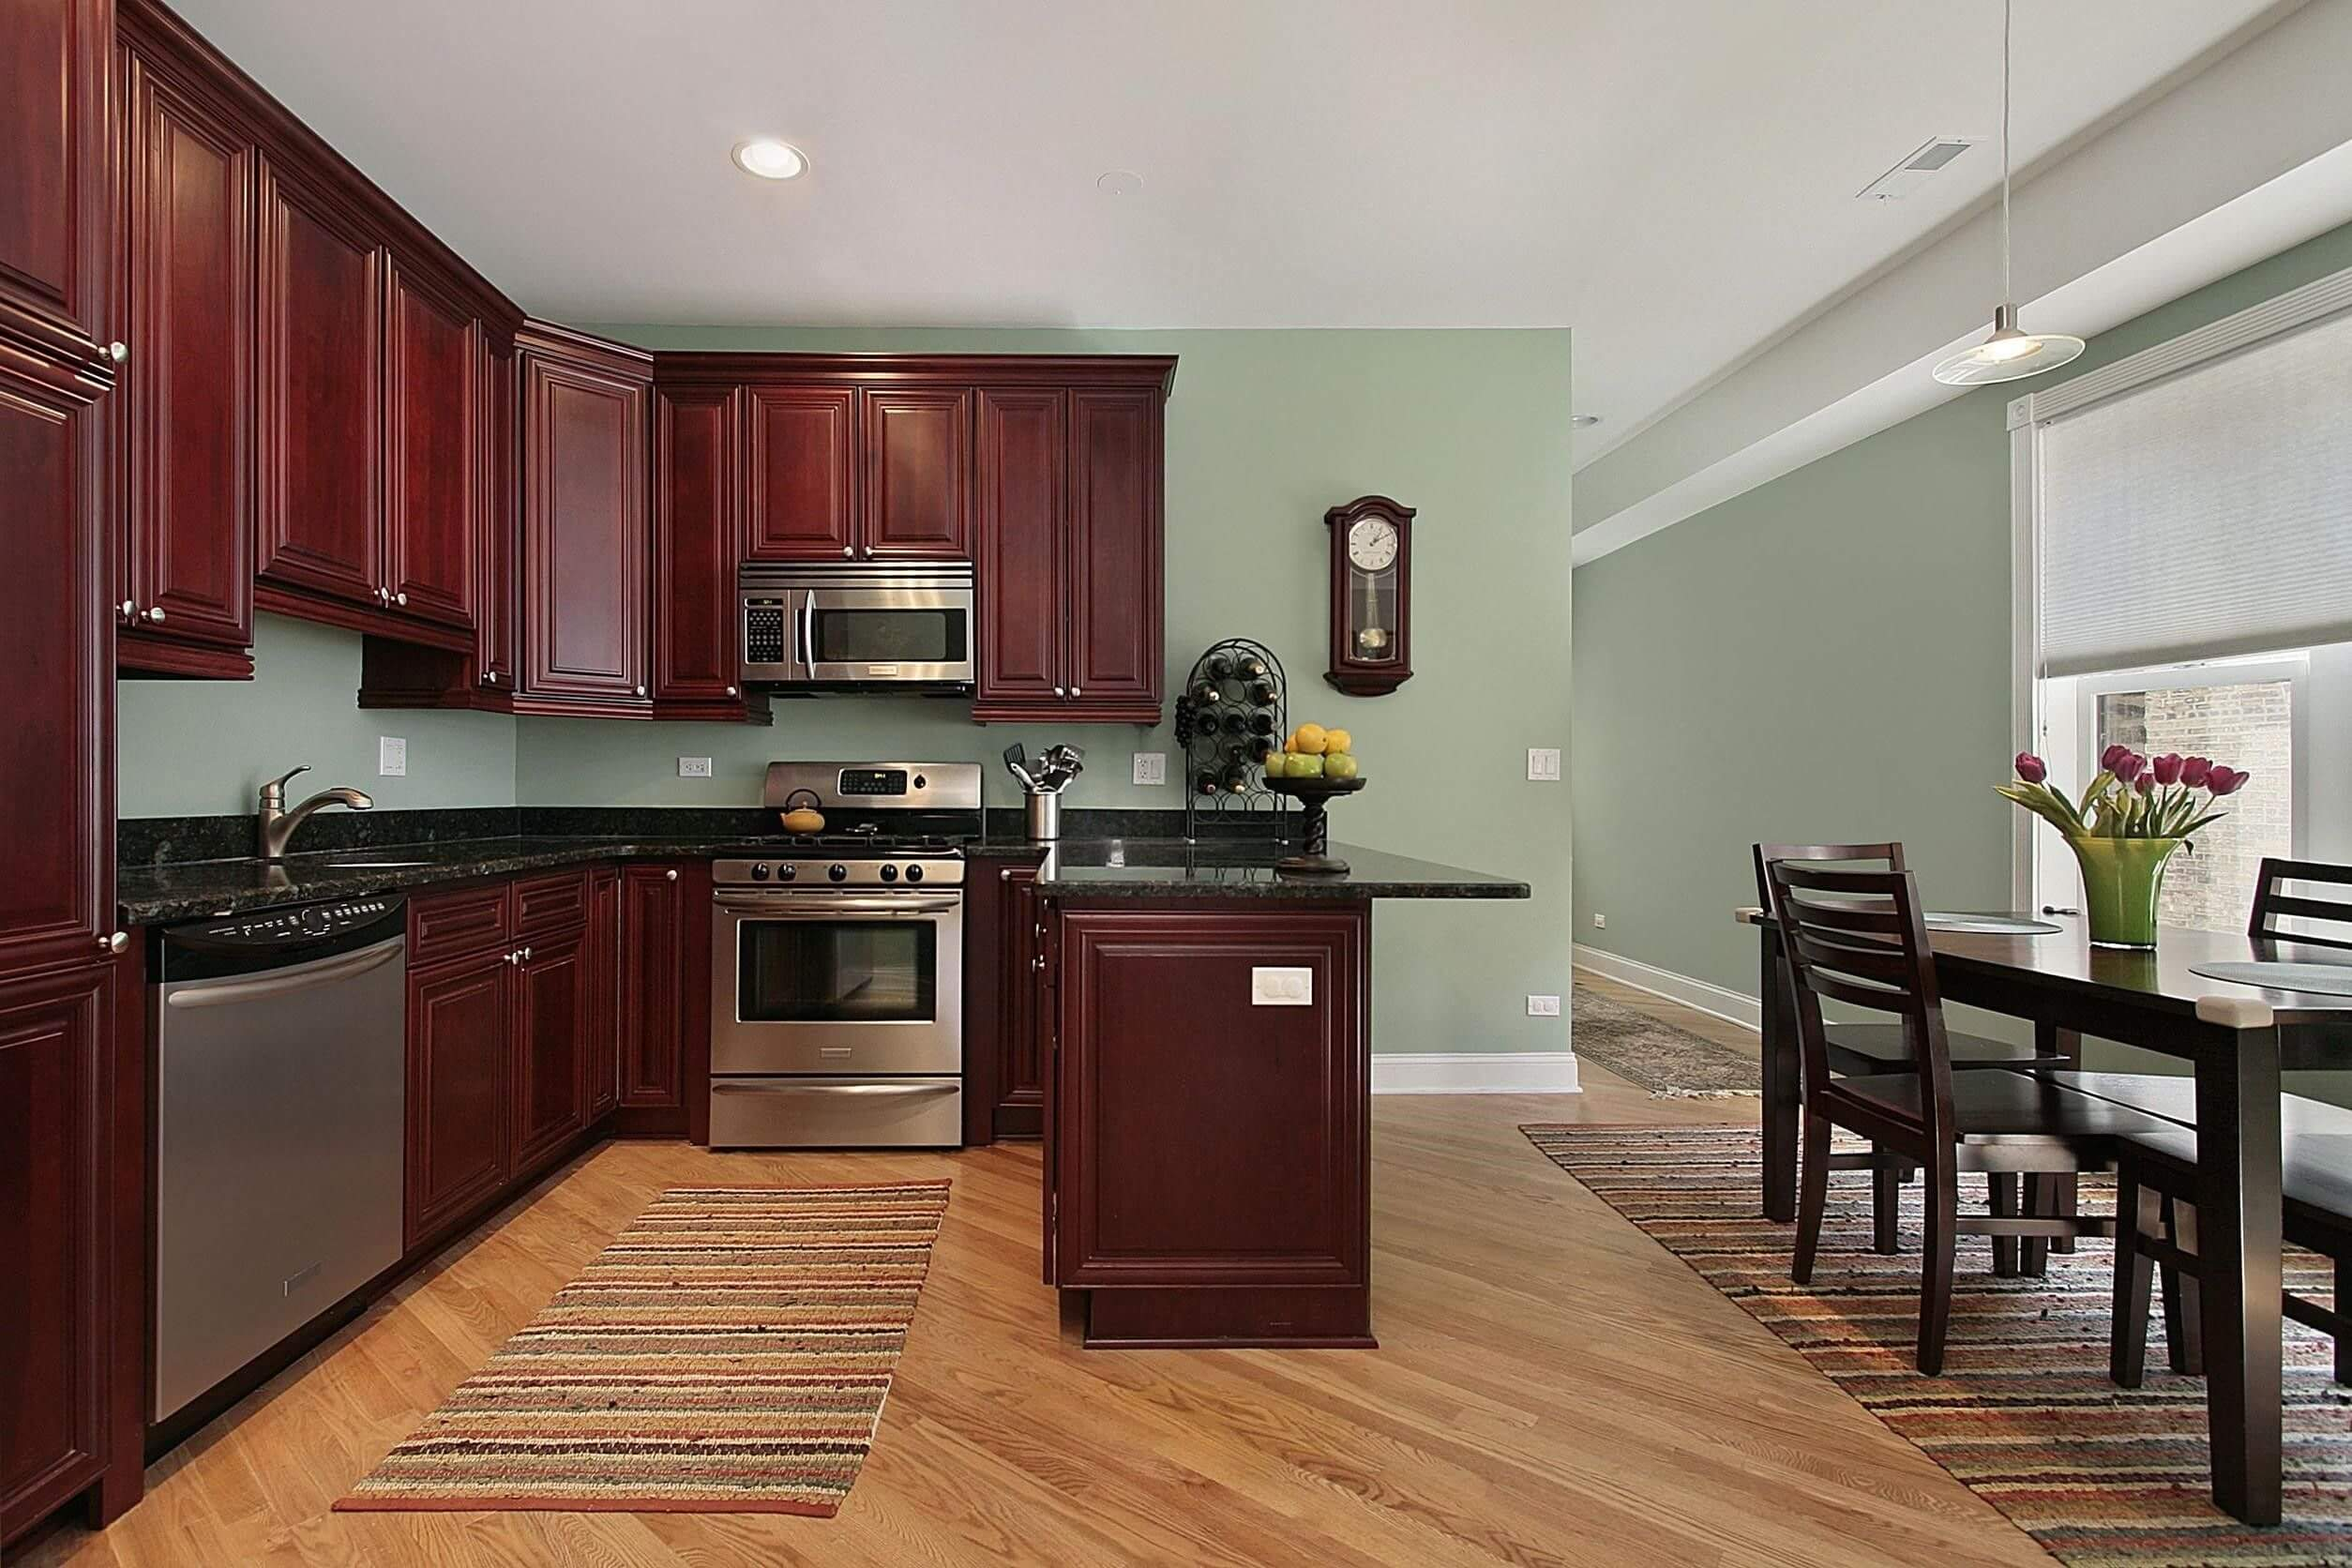 trending kitchen wall colors for the year 2019 on best colors for kitchen walls id=12014